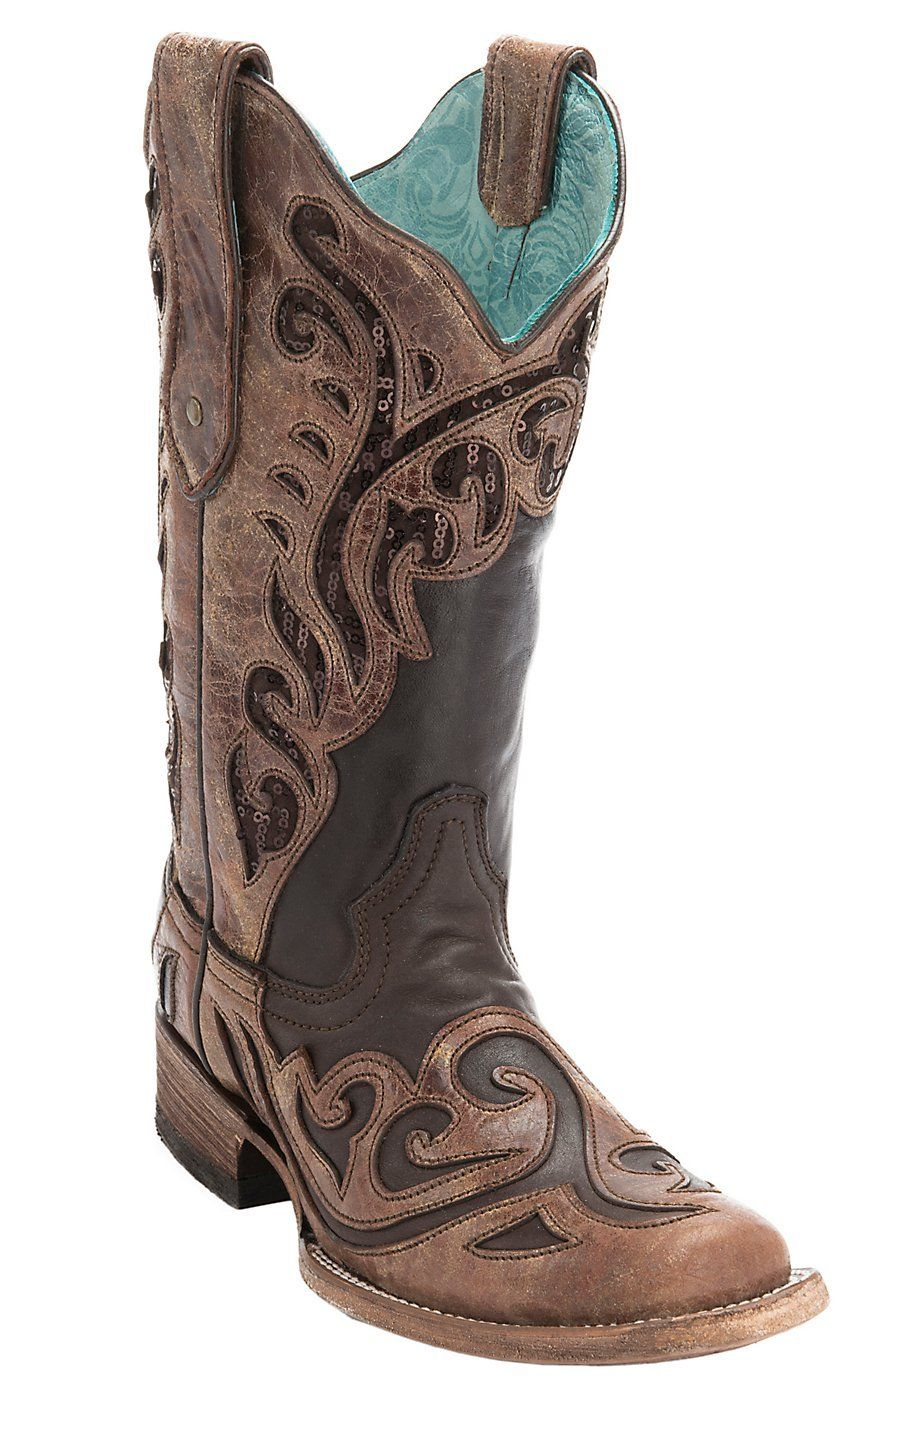 dda3f2c70d0 Corral Ladies Chocolate w/ Distressed Brown Wave Overlay Sequin ...